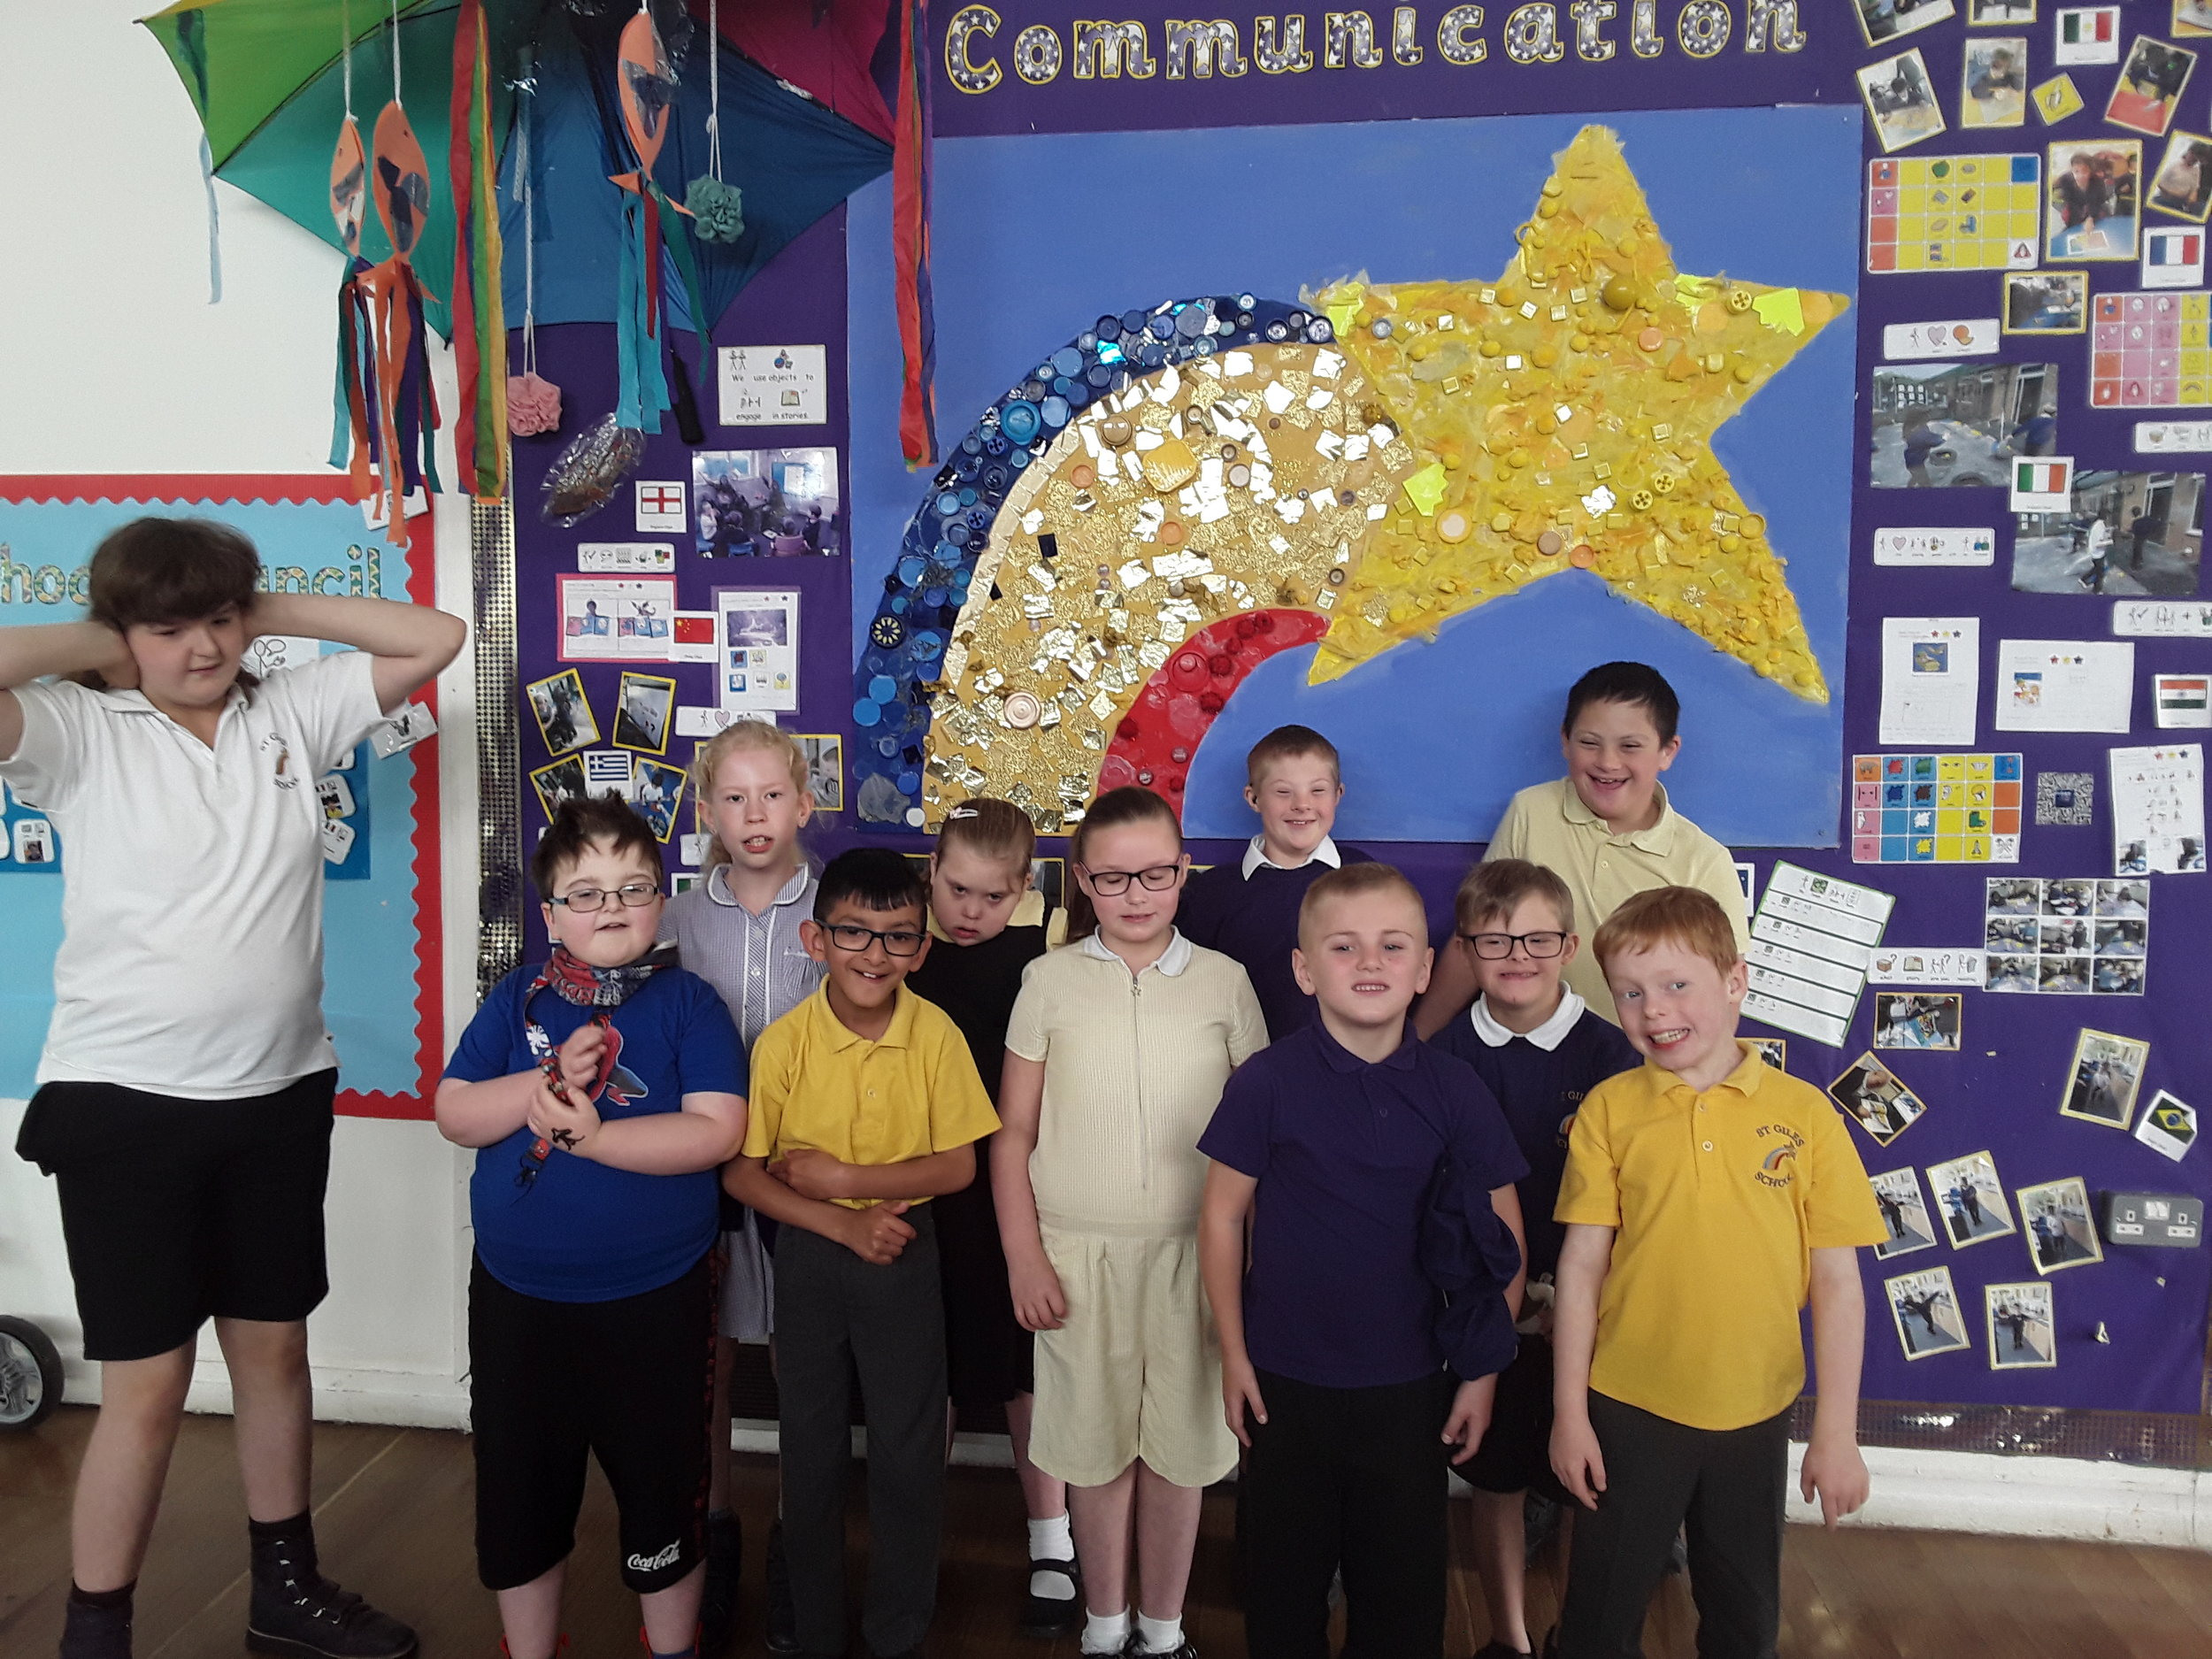 By Royal Appointment...could these youngsters from St Giles School be about to perform for Prince Harry and Meghan Markle? Penguin PR: public relations, media and communications